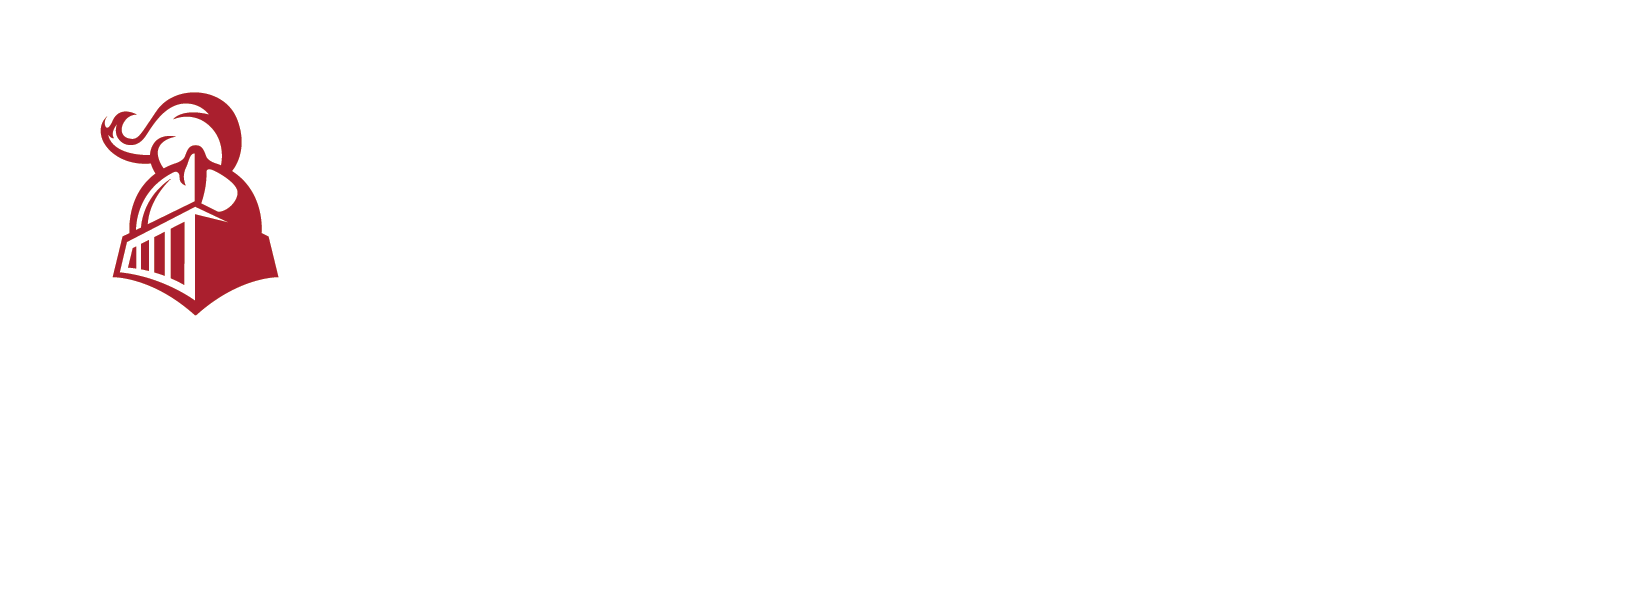 White Knight Productions: Impactful Video and Animation